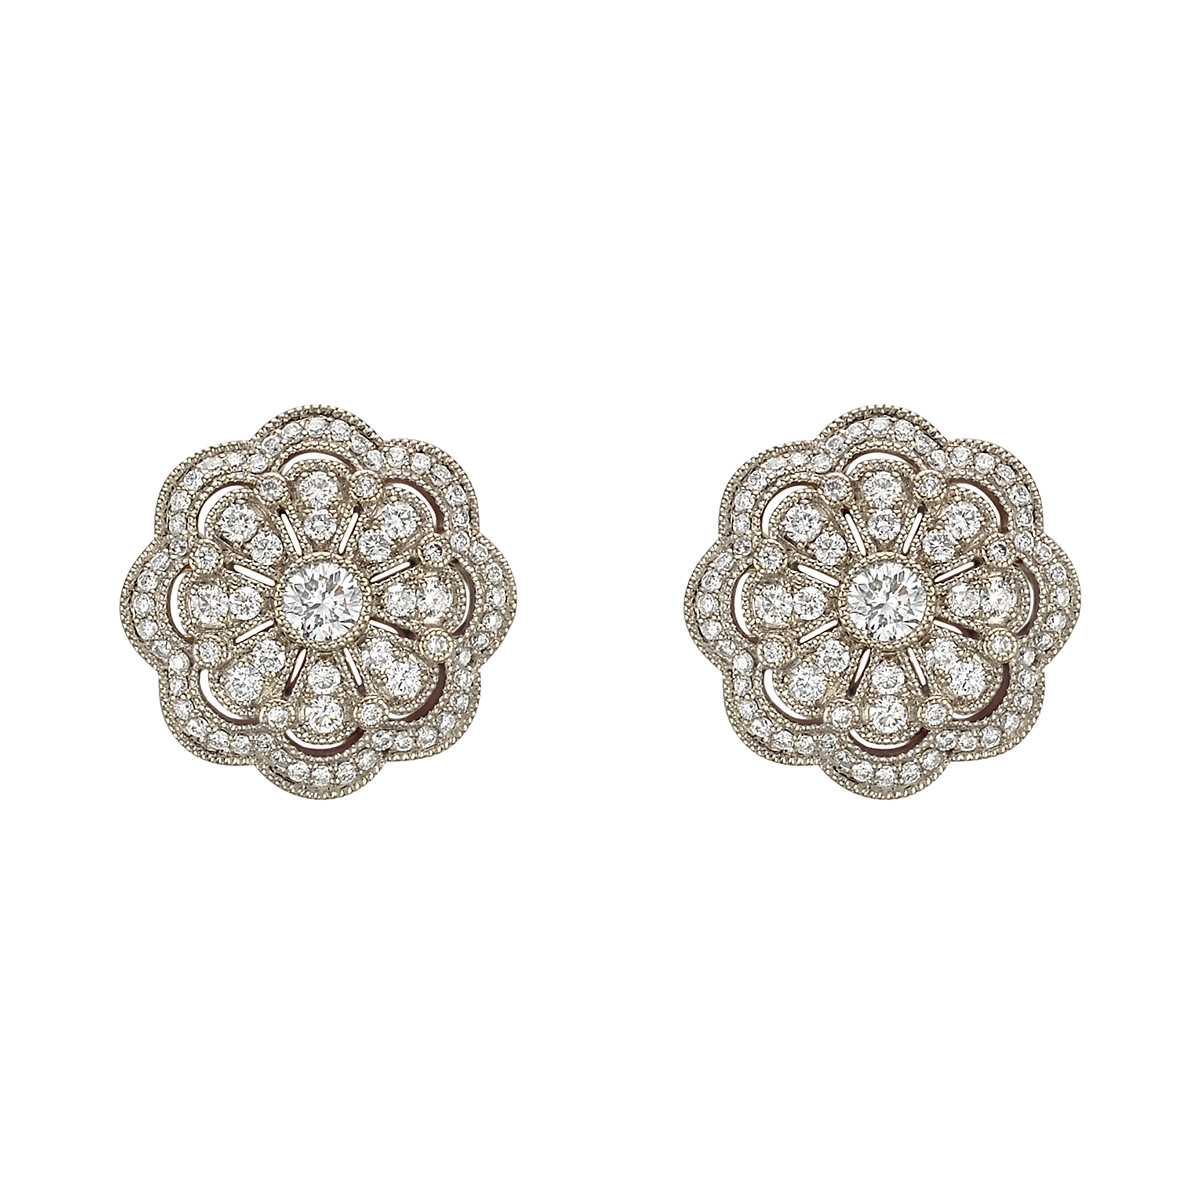 18k Yellow Gold & Diamond Cluster Flower Stud Earrings